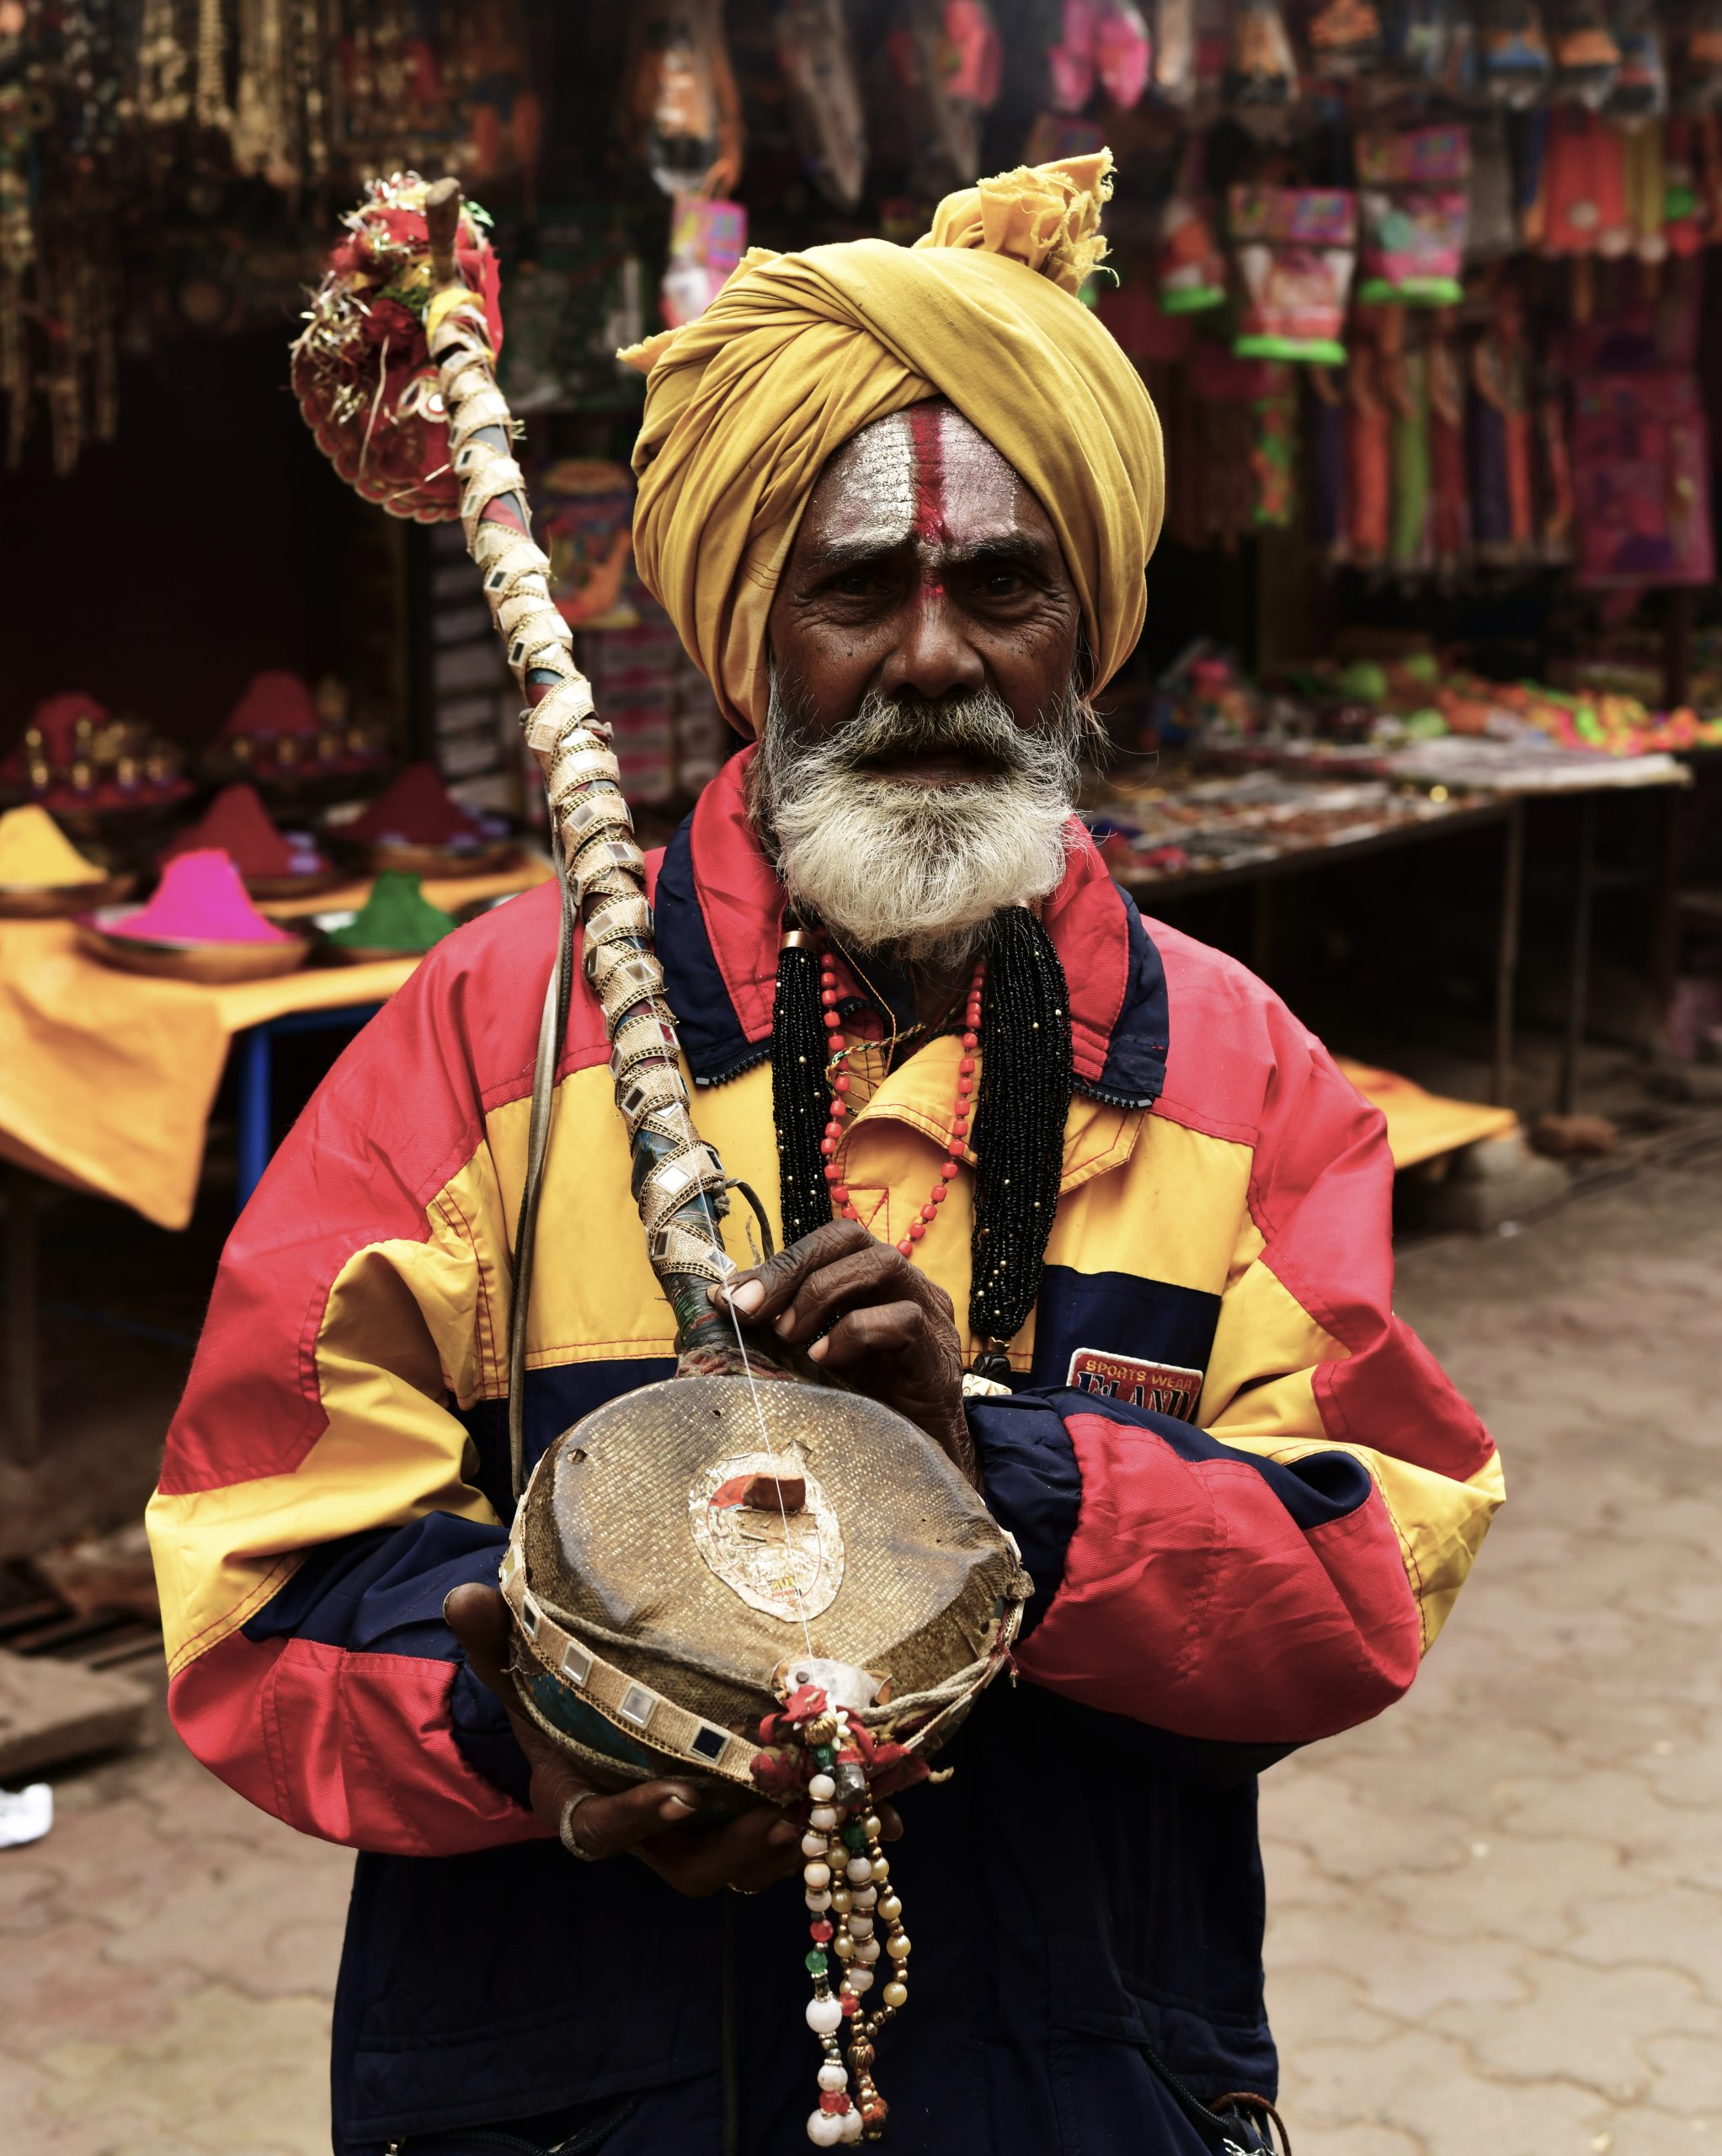 A street performer in a market